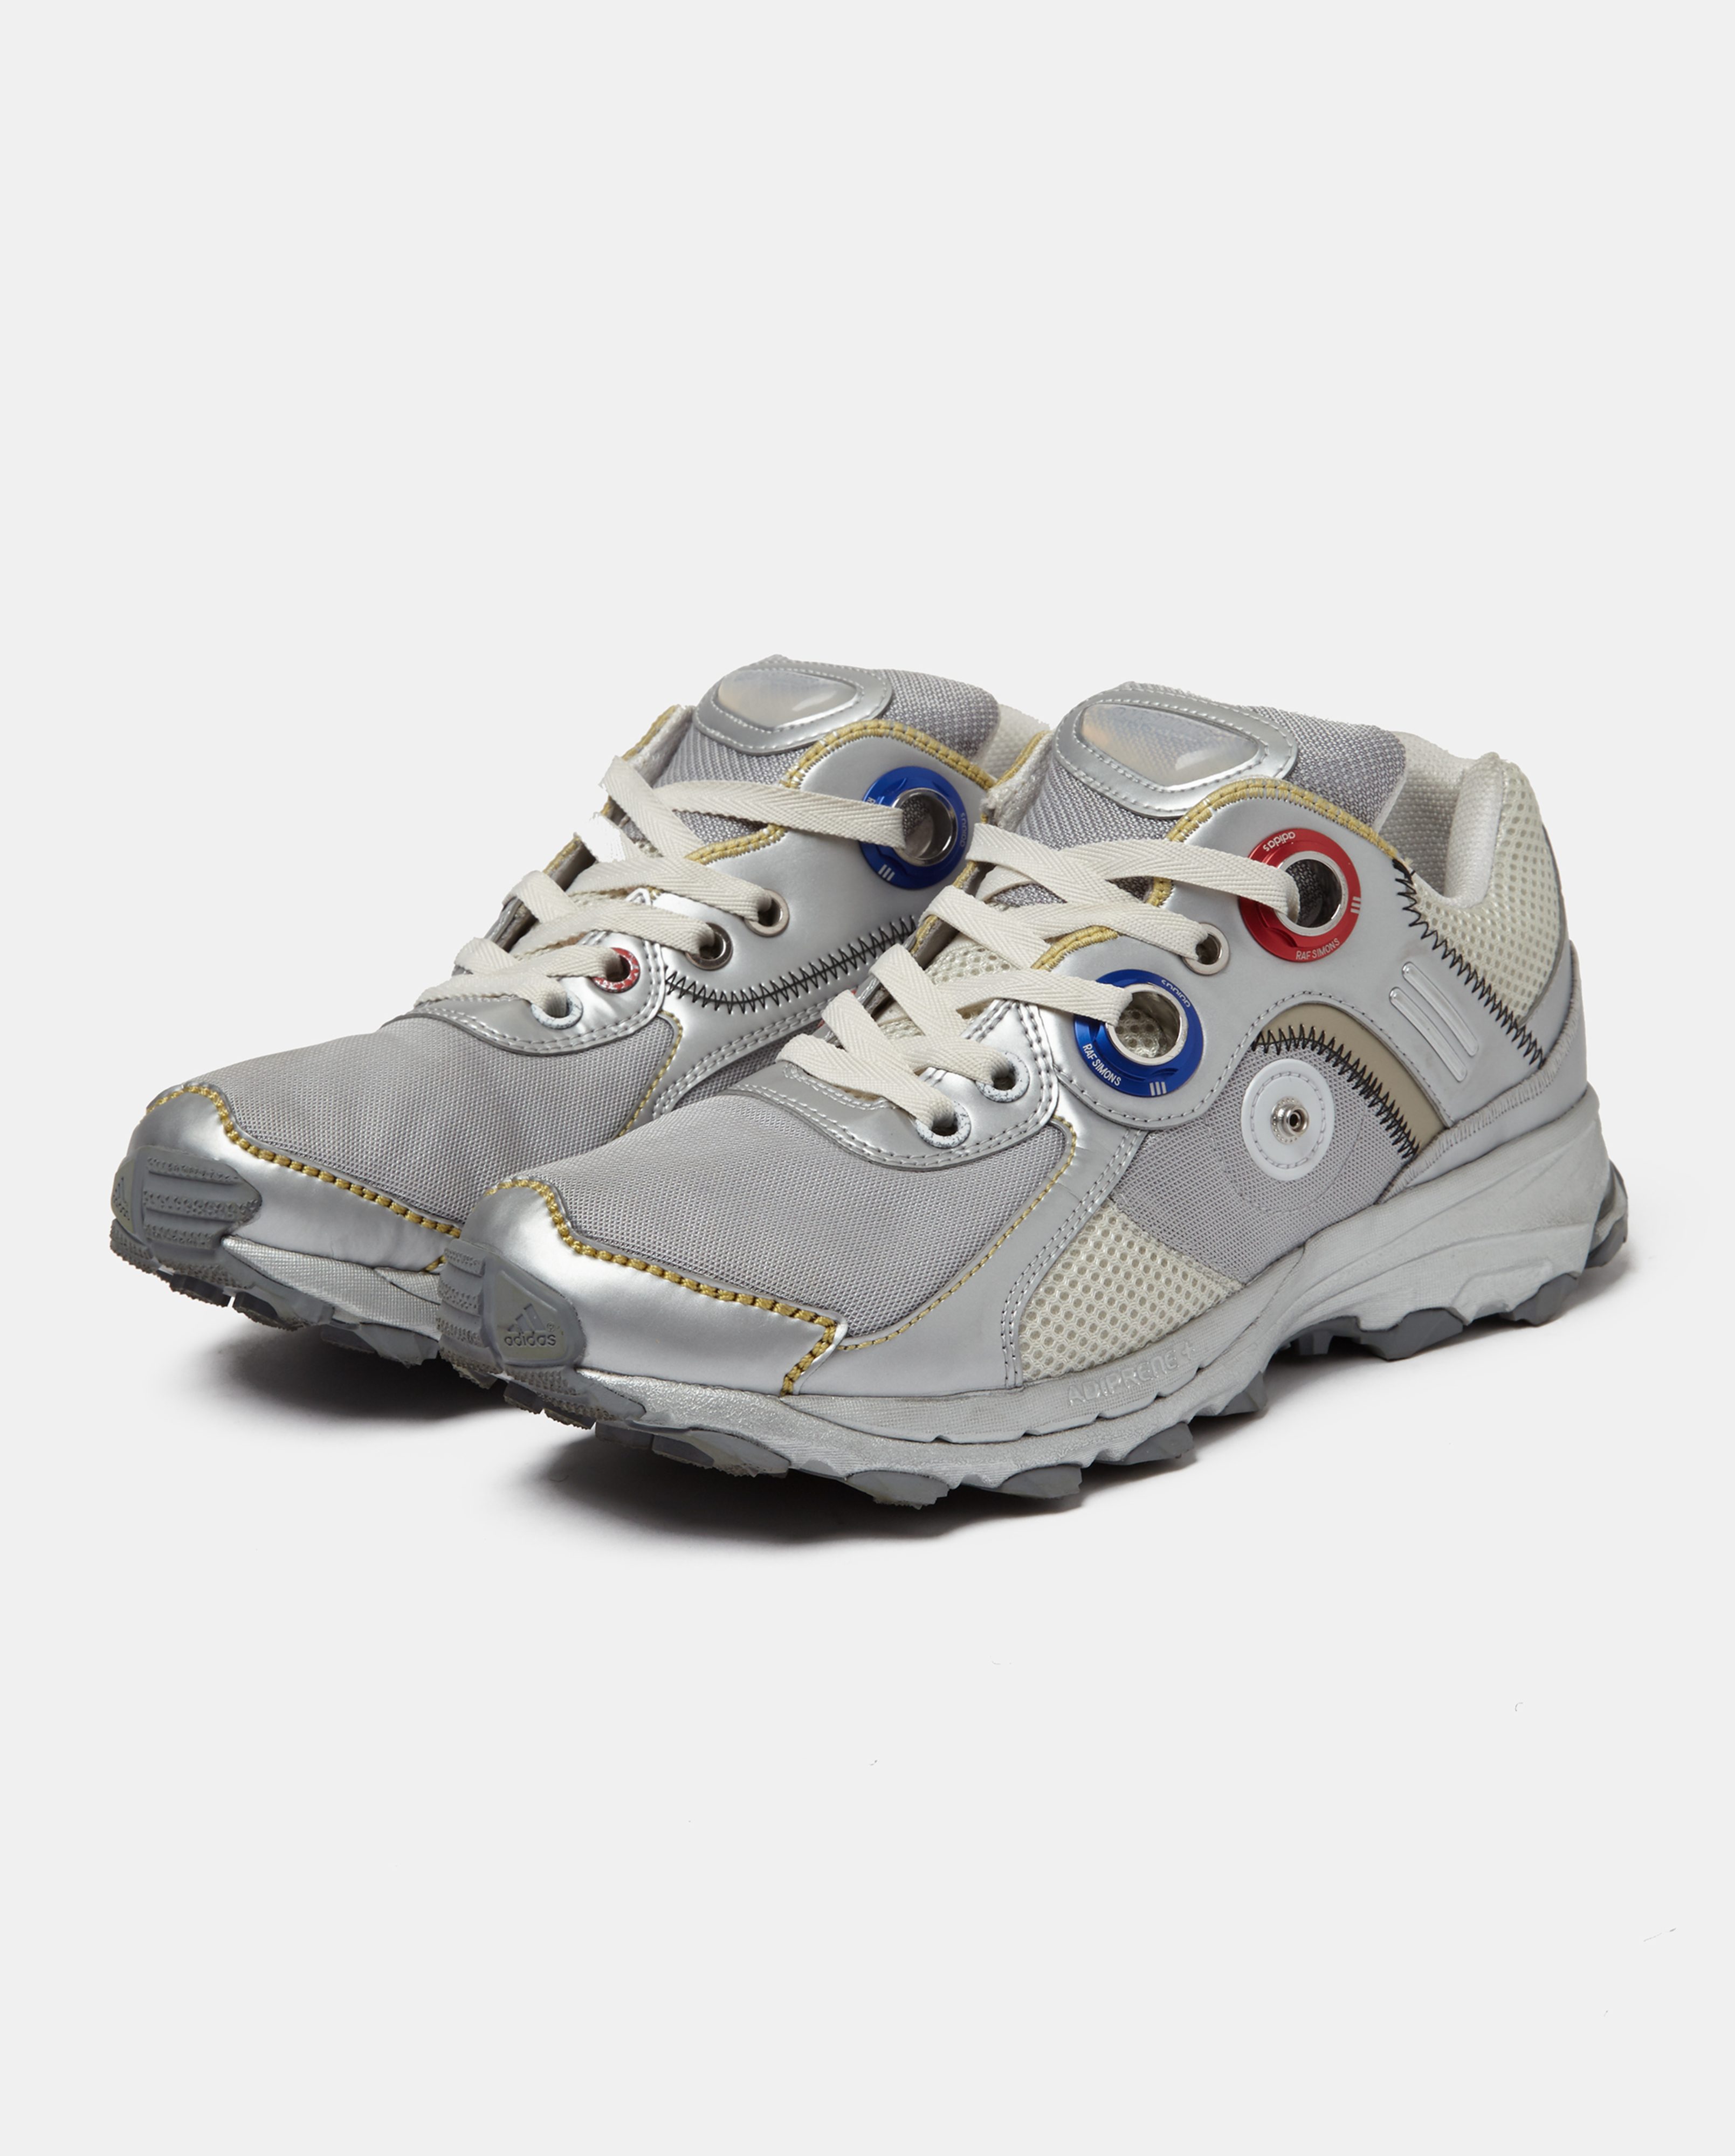 f625ec504bb0 Lyst - adidas By Raf Simons Response Trail Robot Sneakers in ...